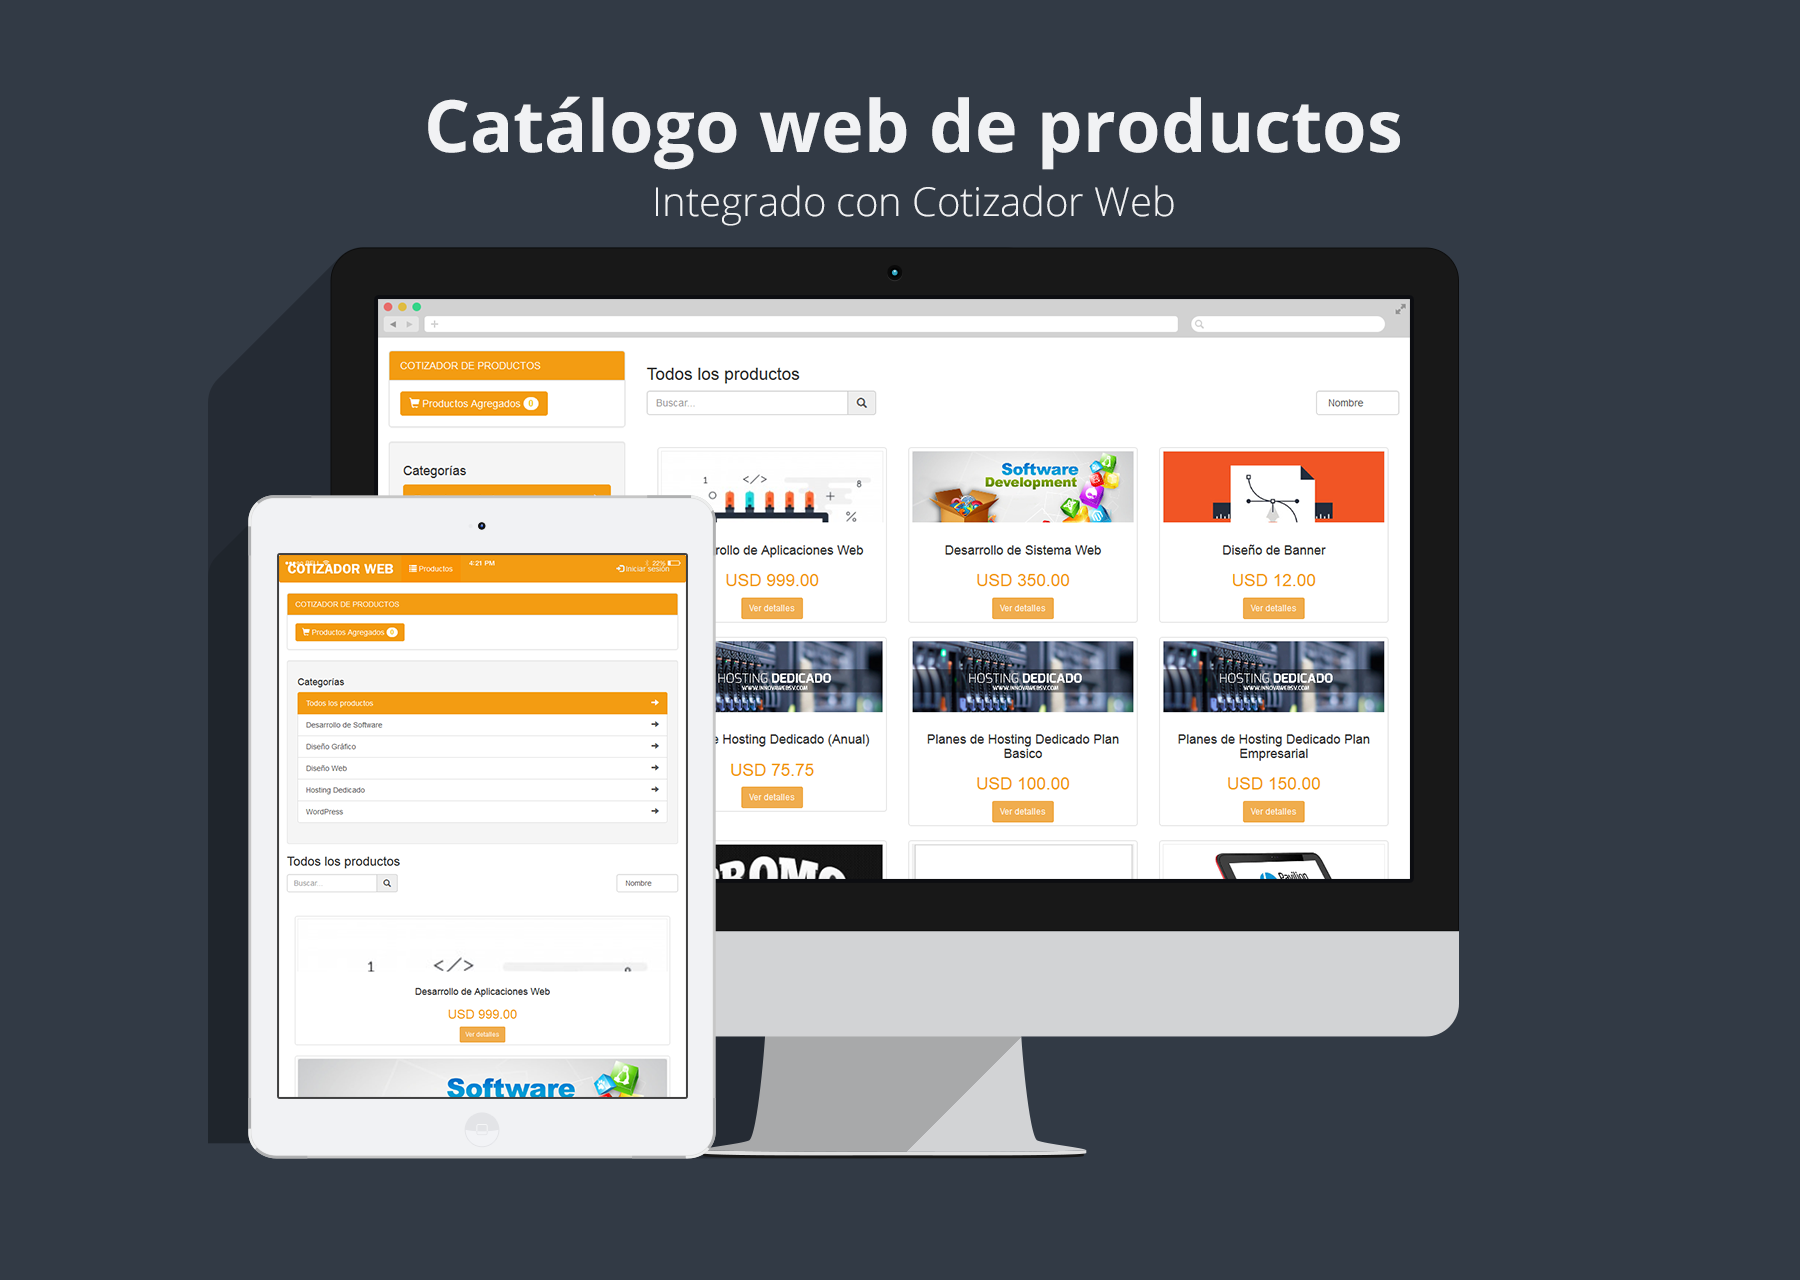 Catalogo web